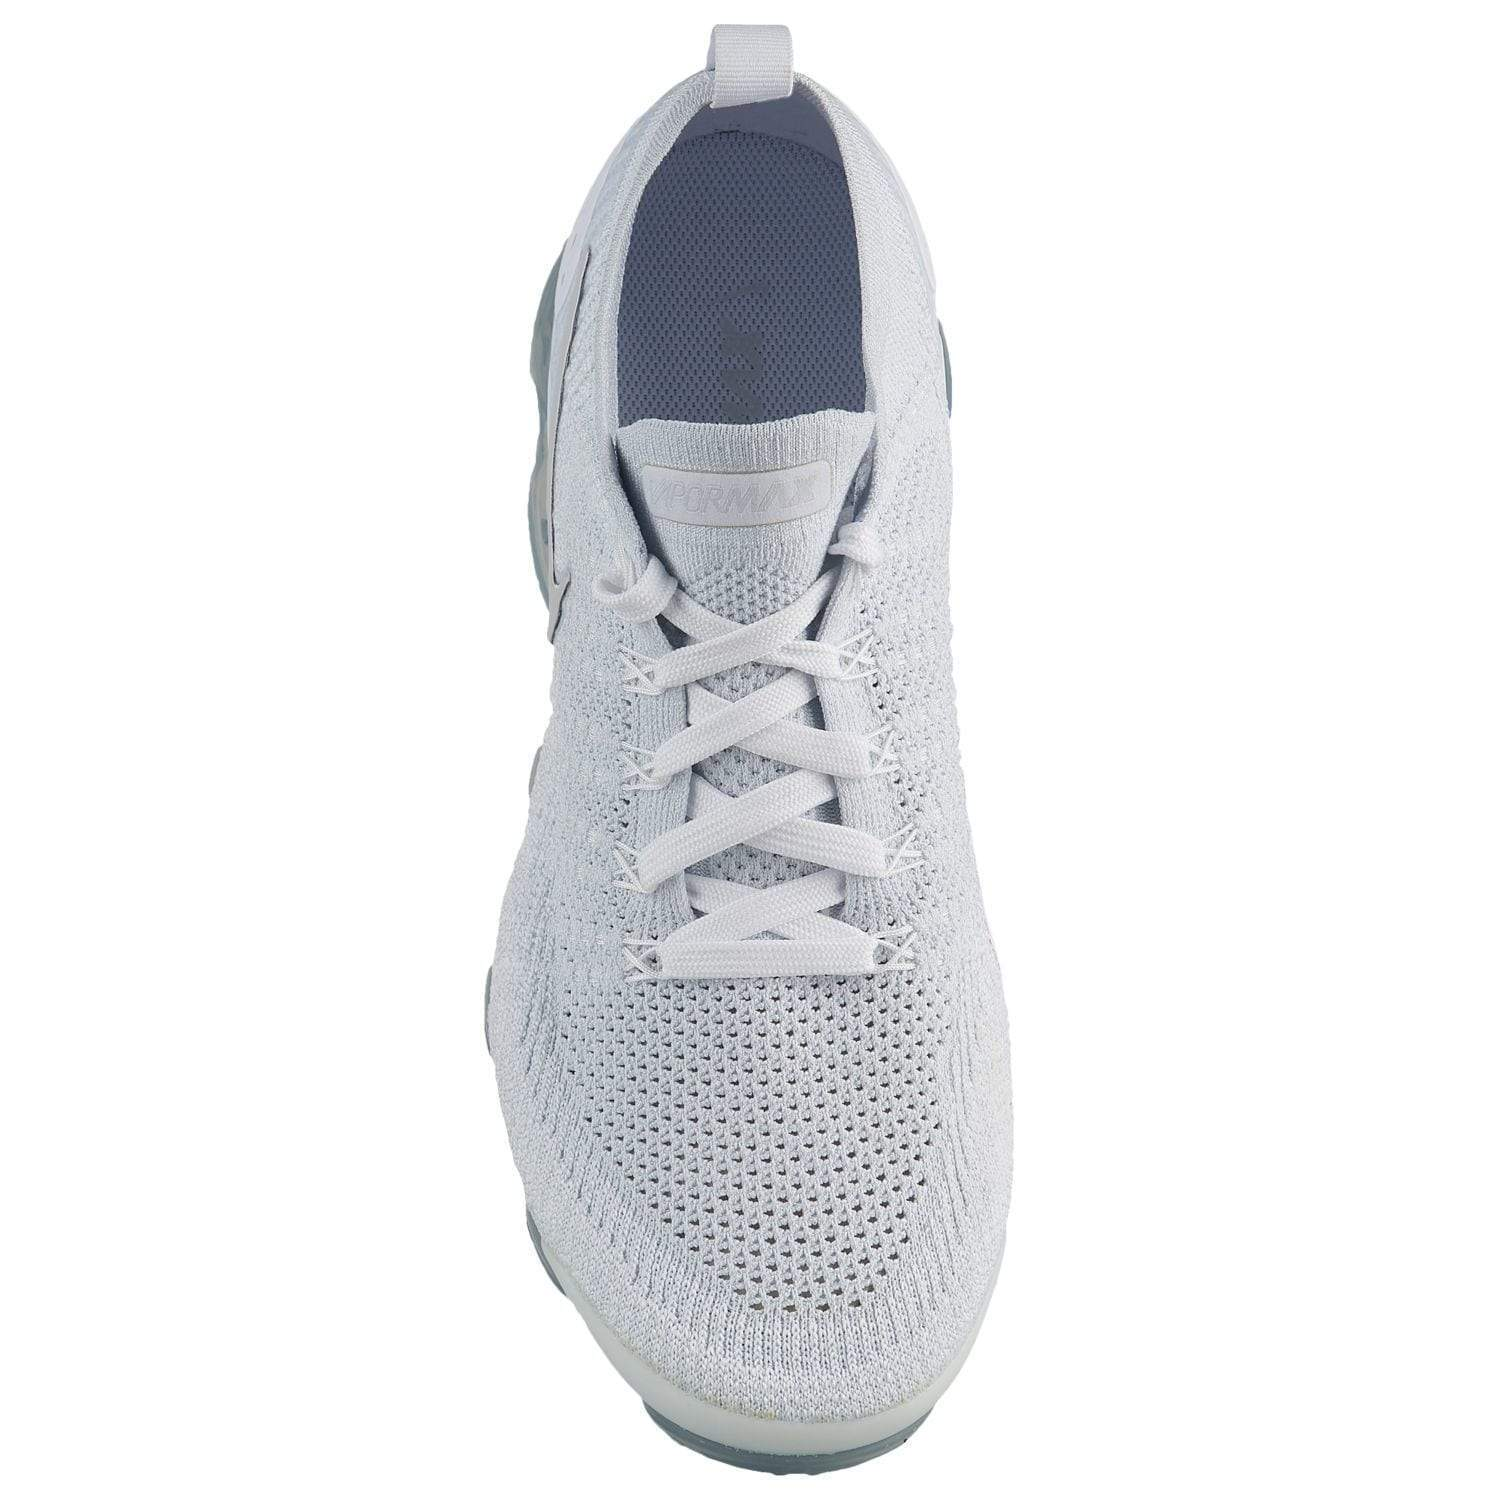 new product 44241 918cc Air Vapormax Flyknit 2 - Mens Running Shoes - 942842-105 - White